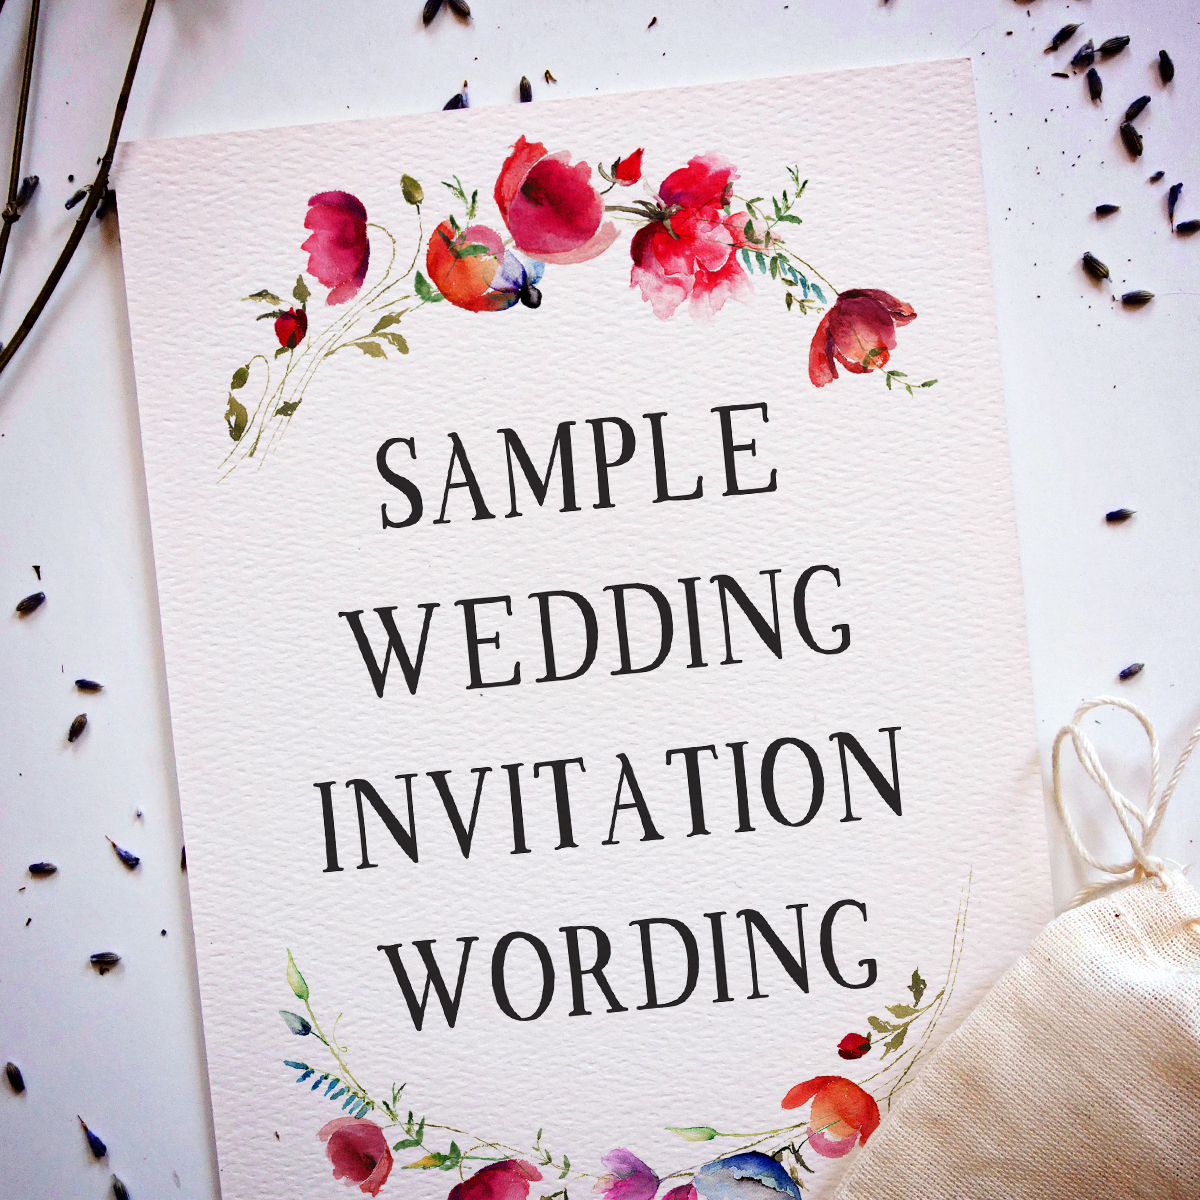 wedding invitation wording creative and traditional a practical wedding a practical wedding were your wedding planner wedding ideas for brides - Wedding Invitation Wording Together With Their Parents